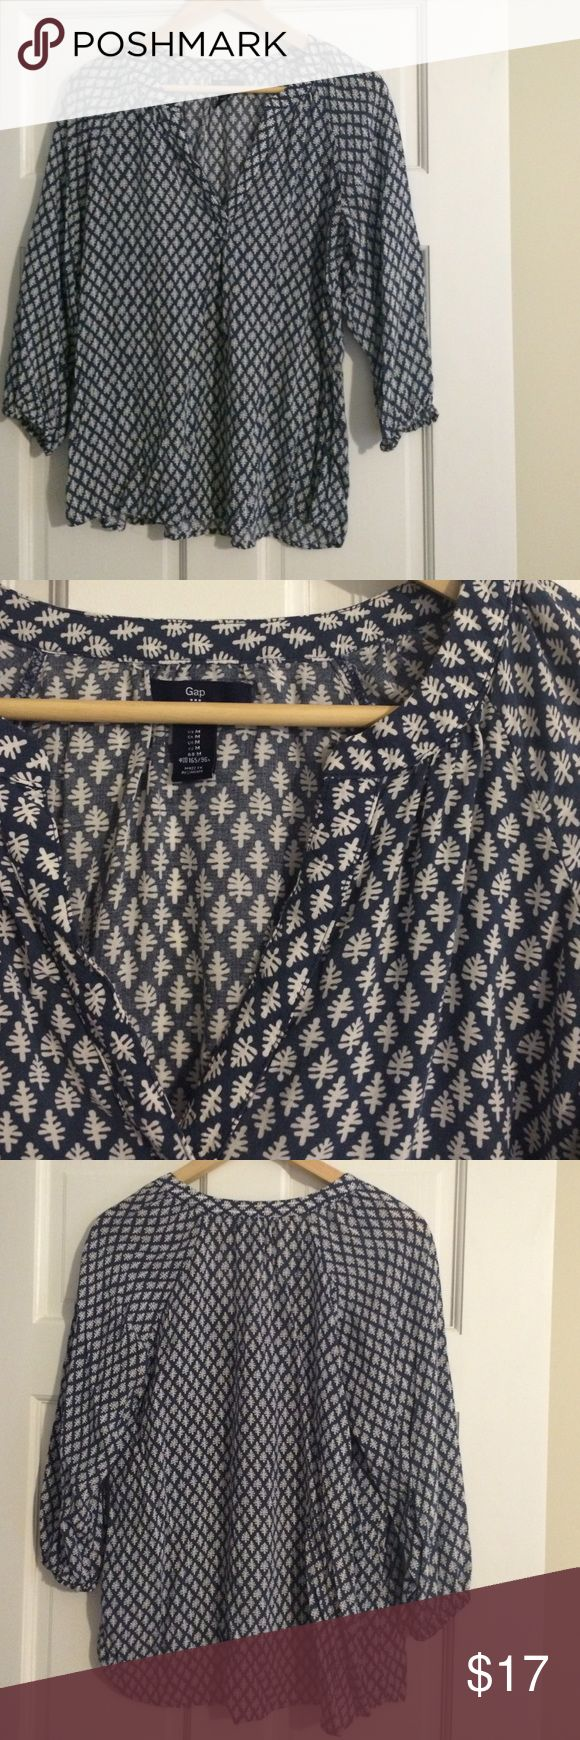 Gap 3/4 Sleeve Split Neck Blouse Gap 3/4 sleeve blouse, blue with white pattern, split neck, slightly curved hem, elastic at sleeves, slightly longer in back, super cute, great condition! GAP Tops Blouses